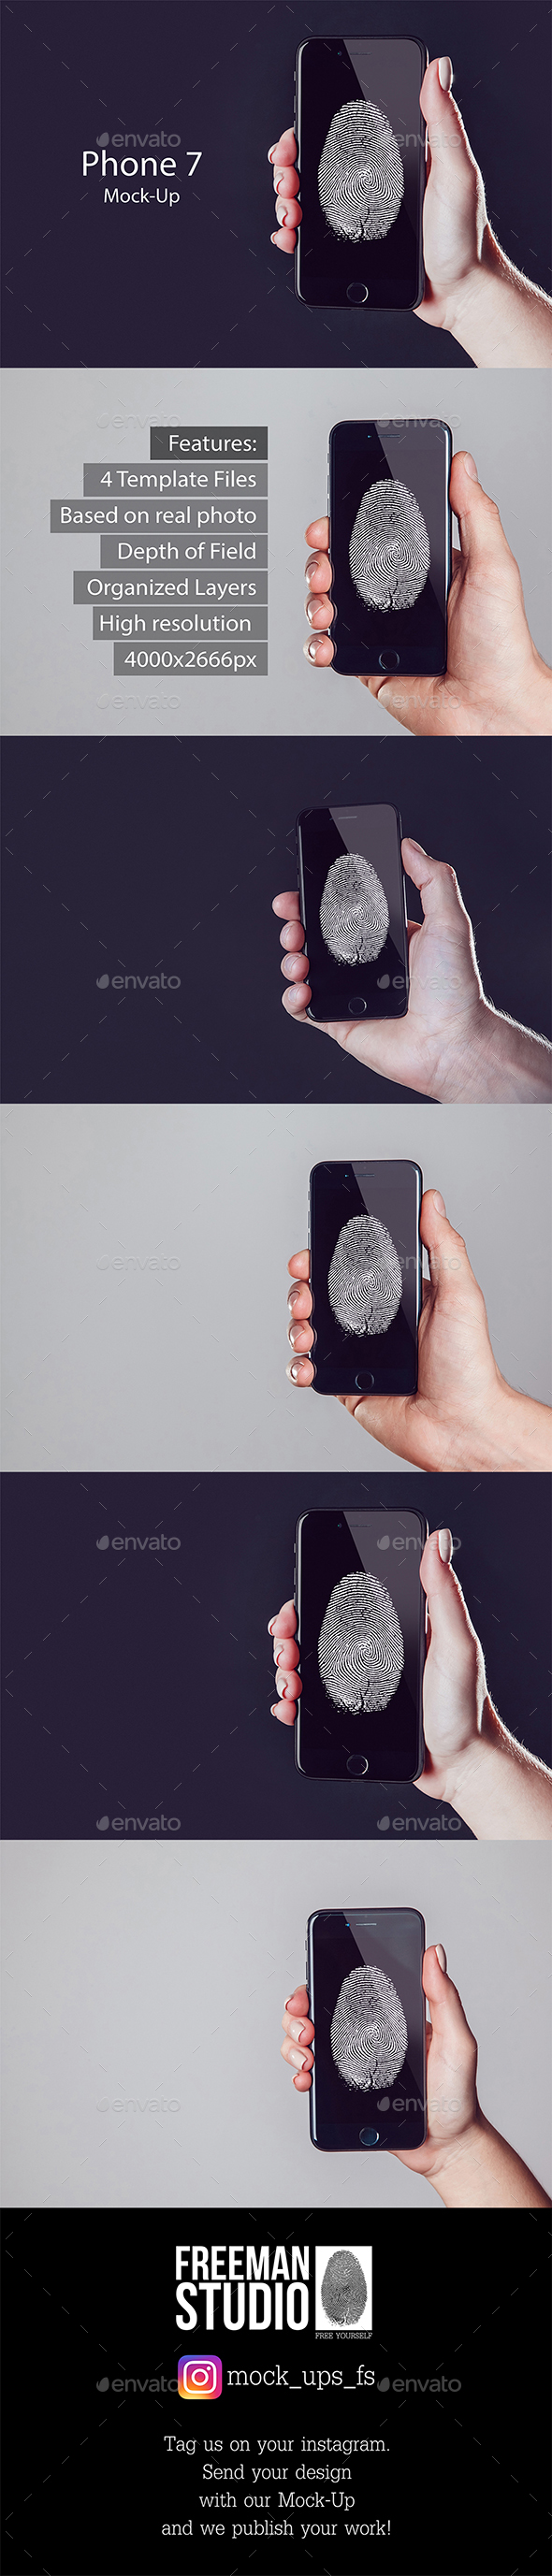 Phone 7 Mock-Up - Mobile Displays